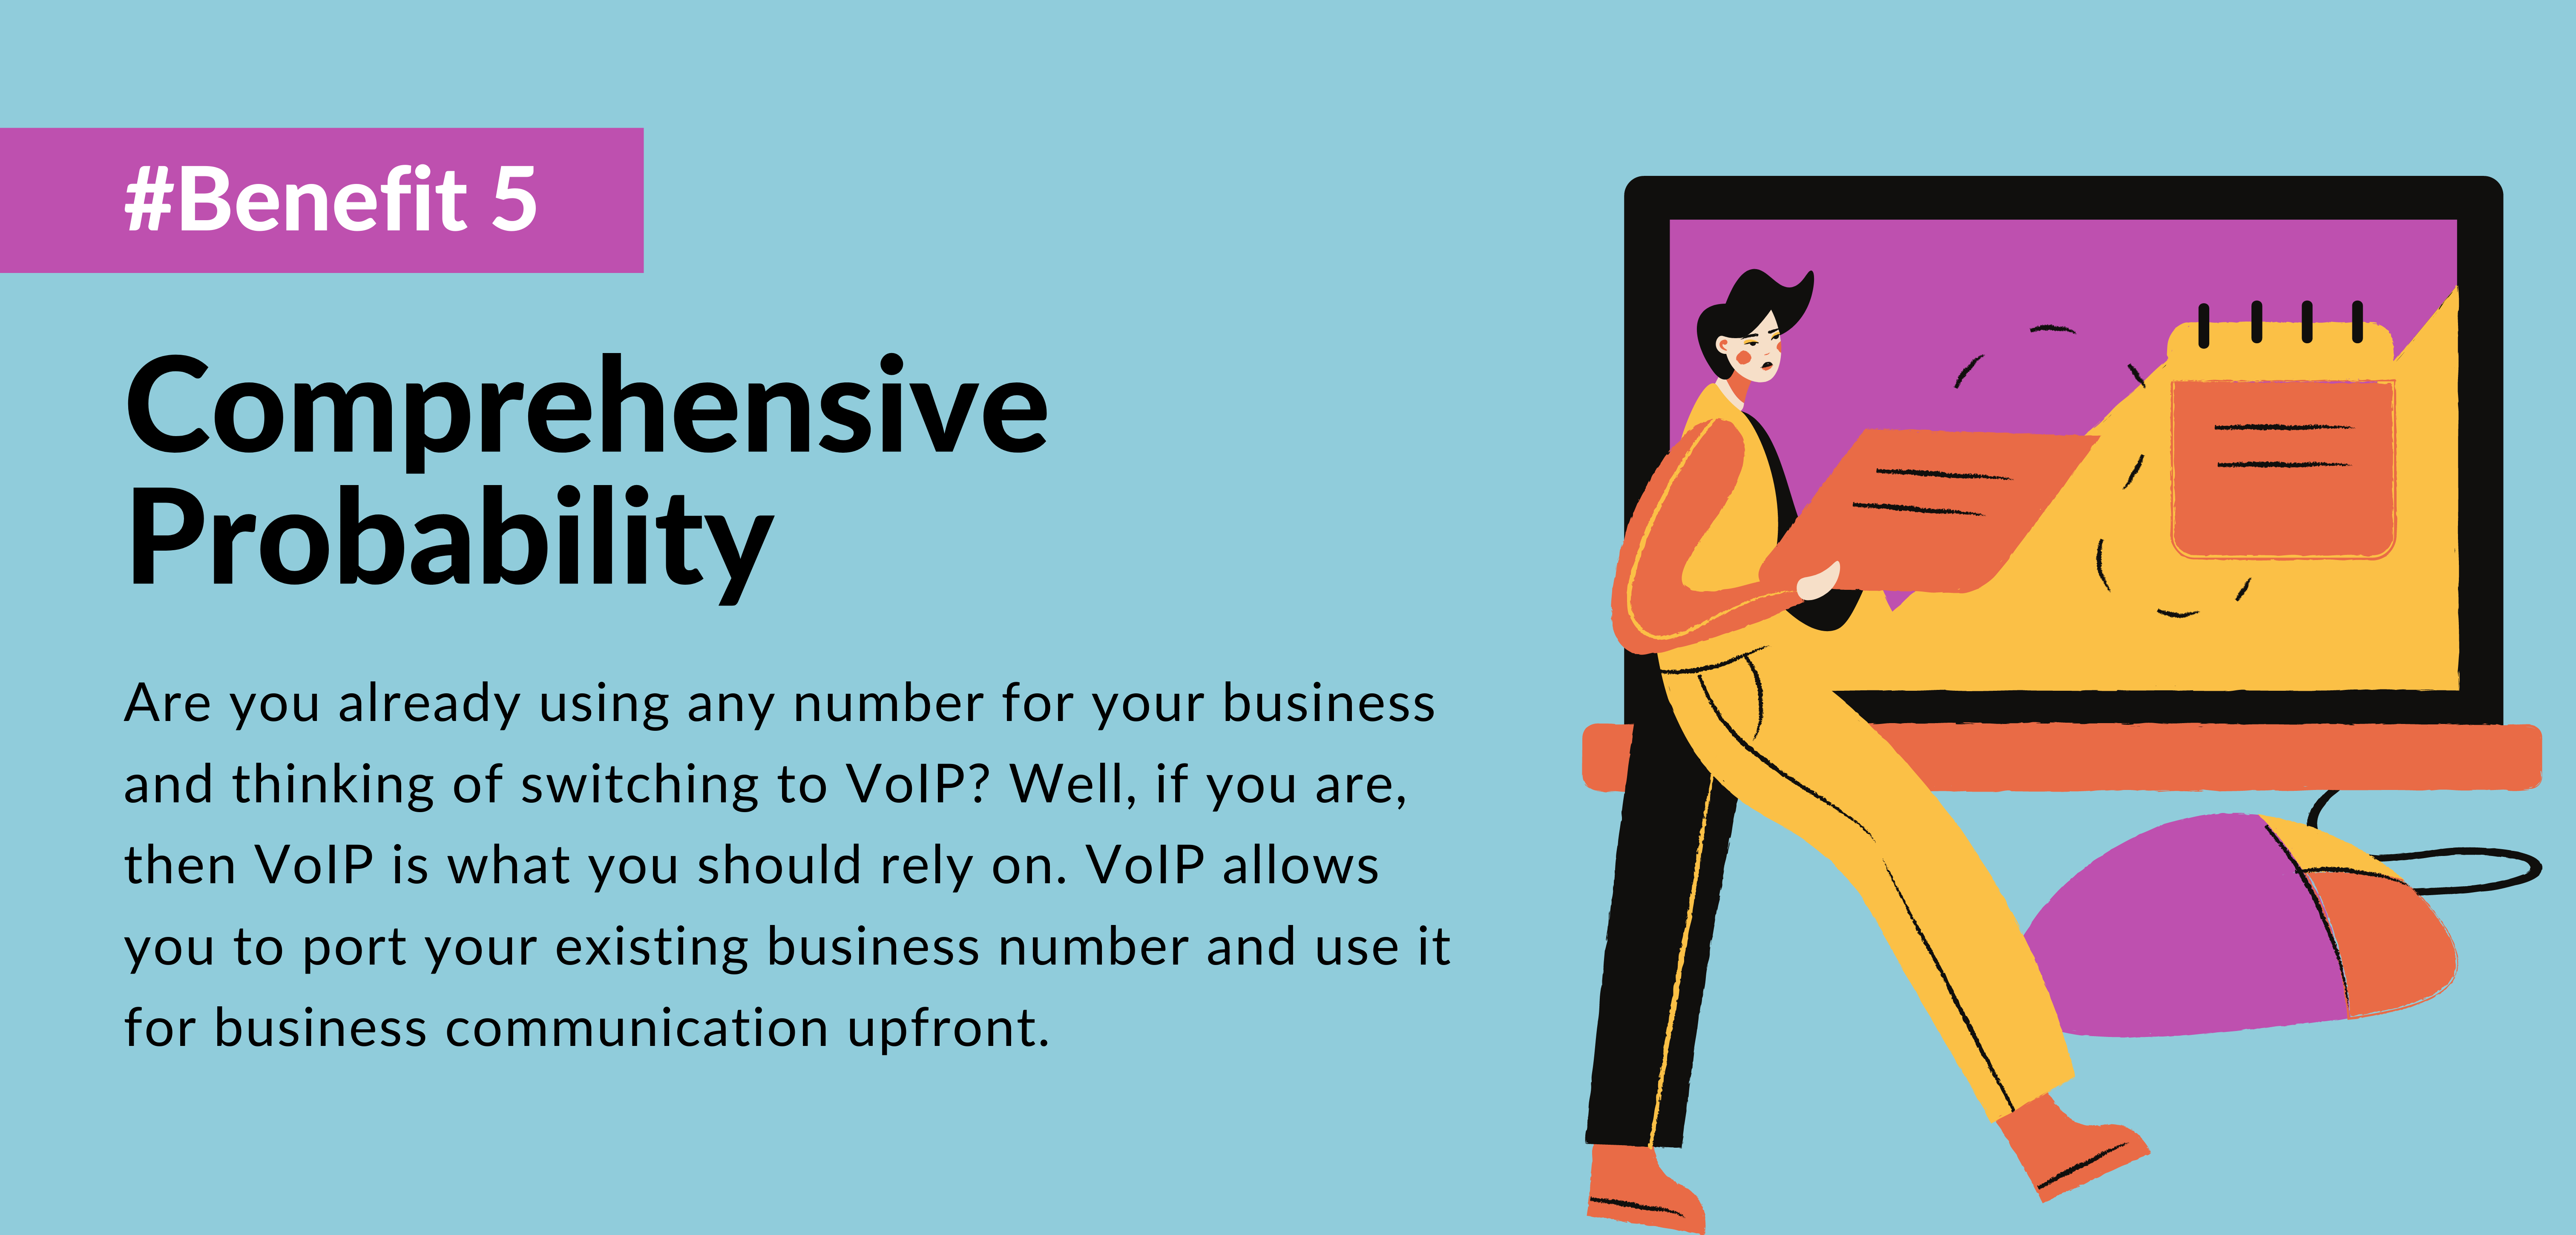 fifth benefit of using voip is Comprehensive Probability- telecloud